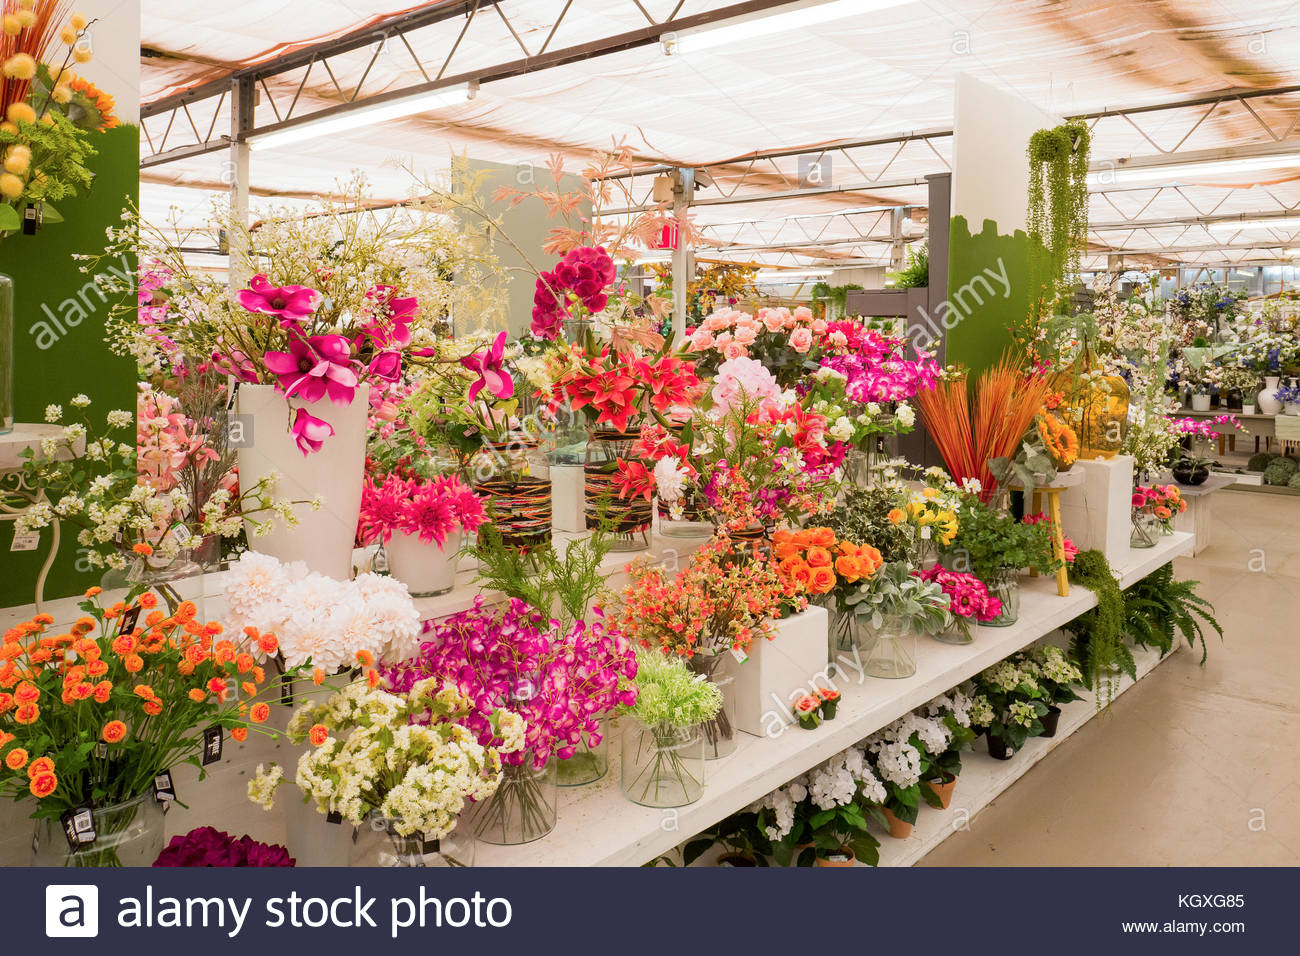 Selling artificial flowers stock photos selling for Driesprong zoetermeer